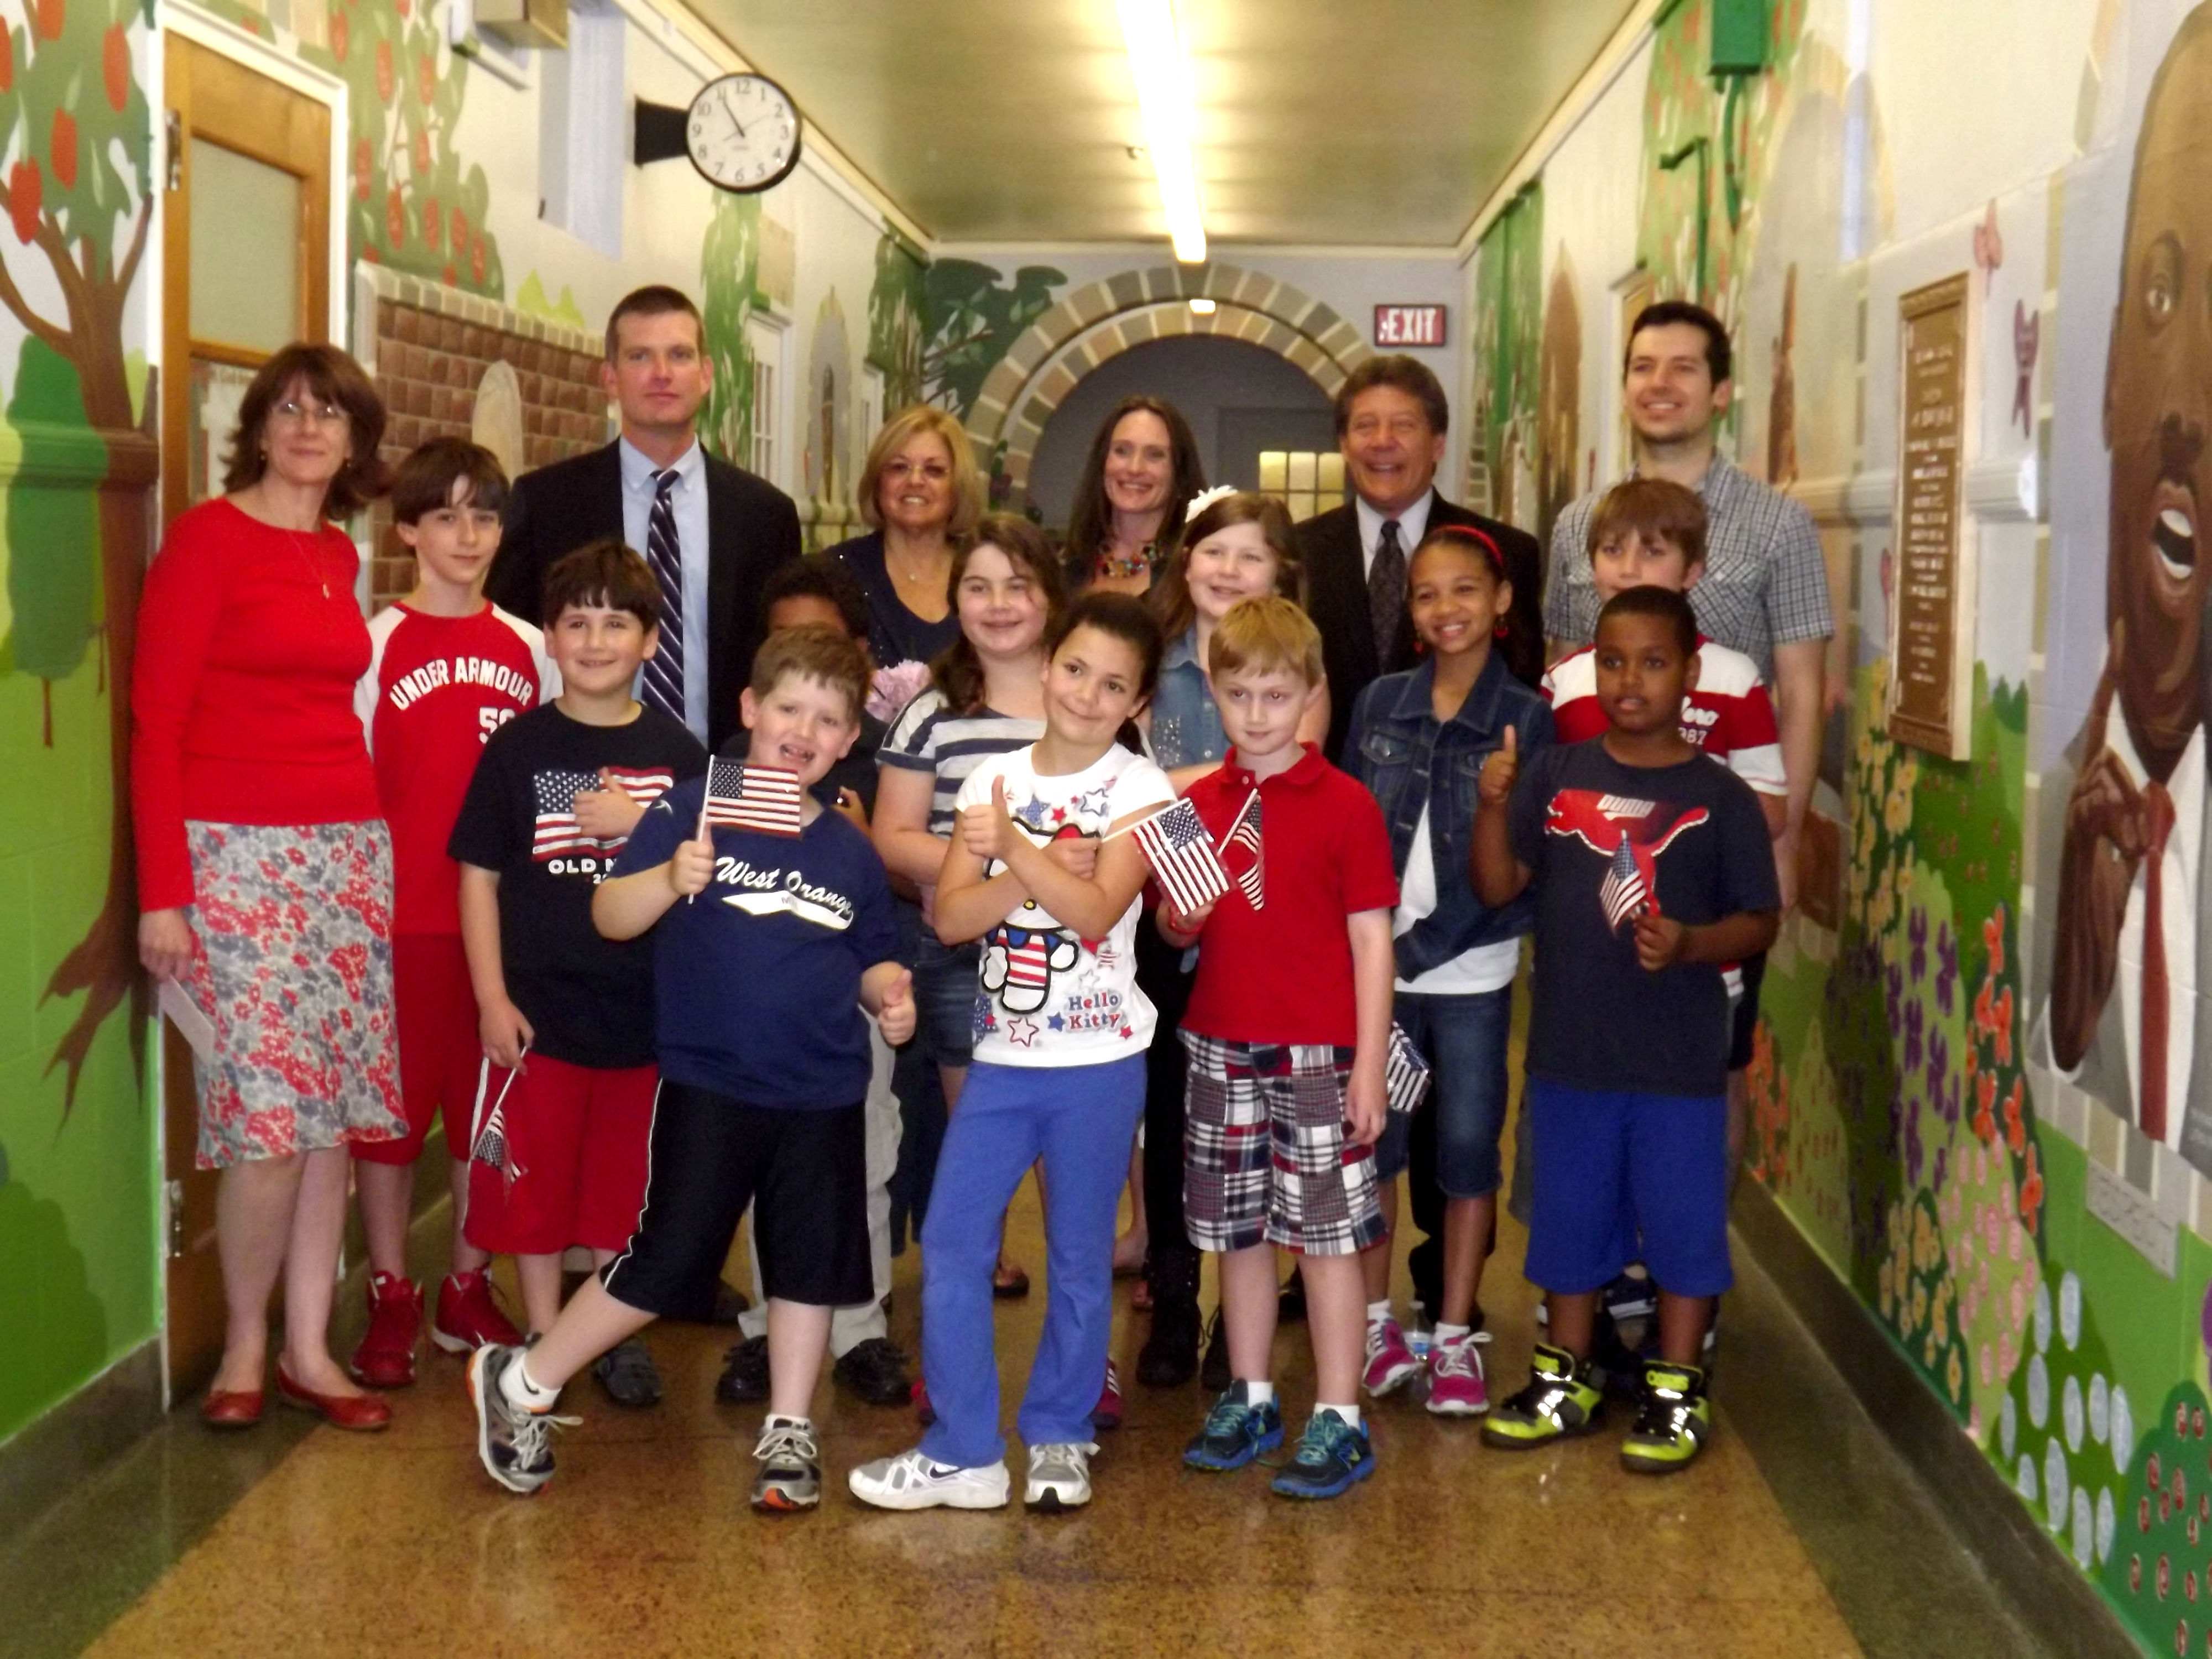 St. Cloud Elementary School Celebrates New Mural During Flag Day Ceremony